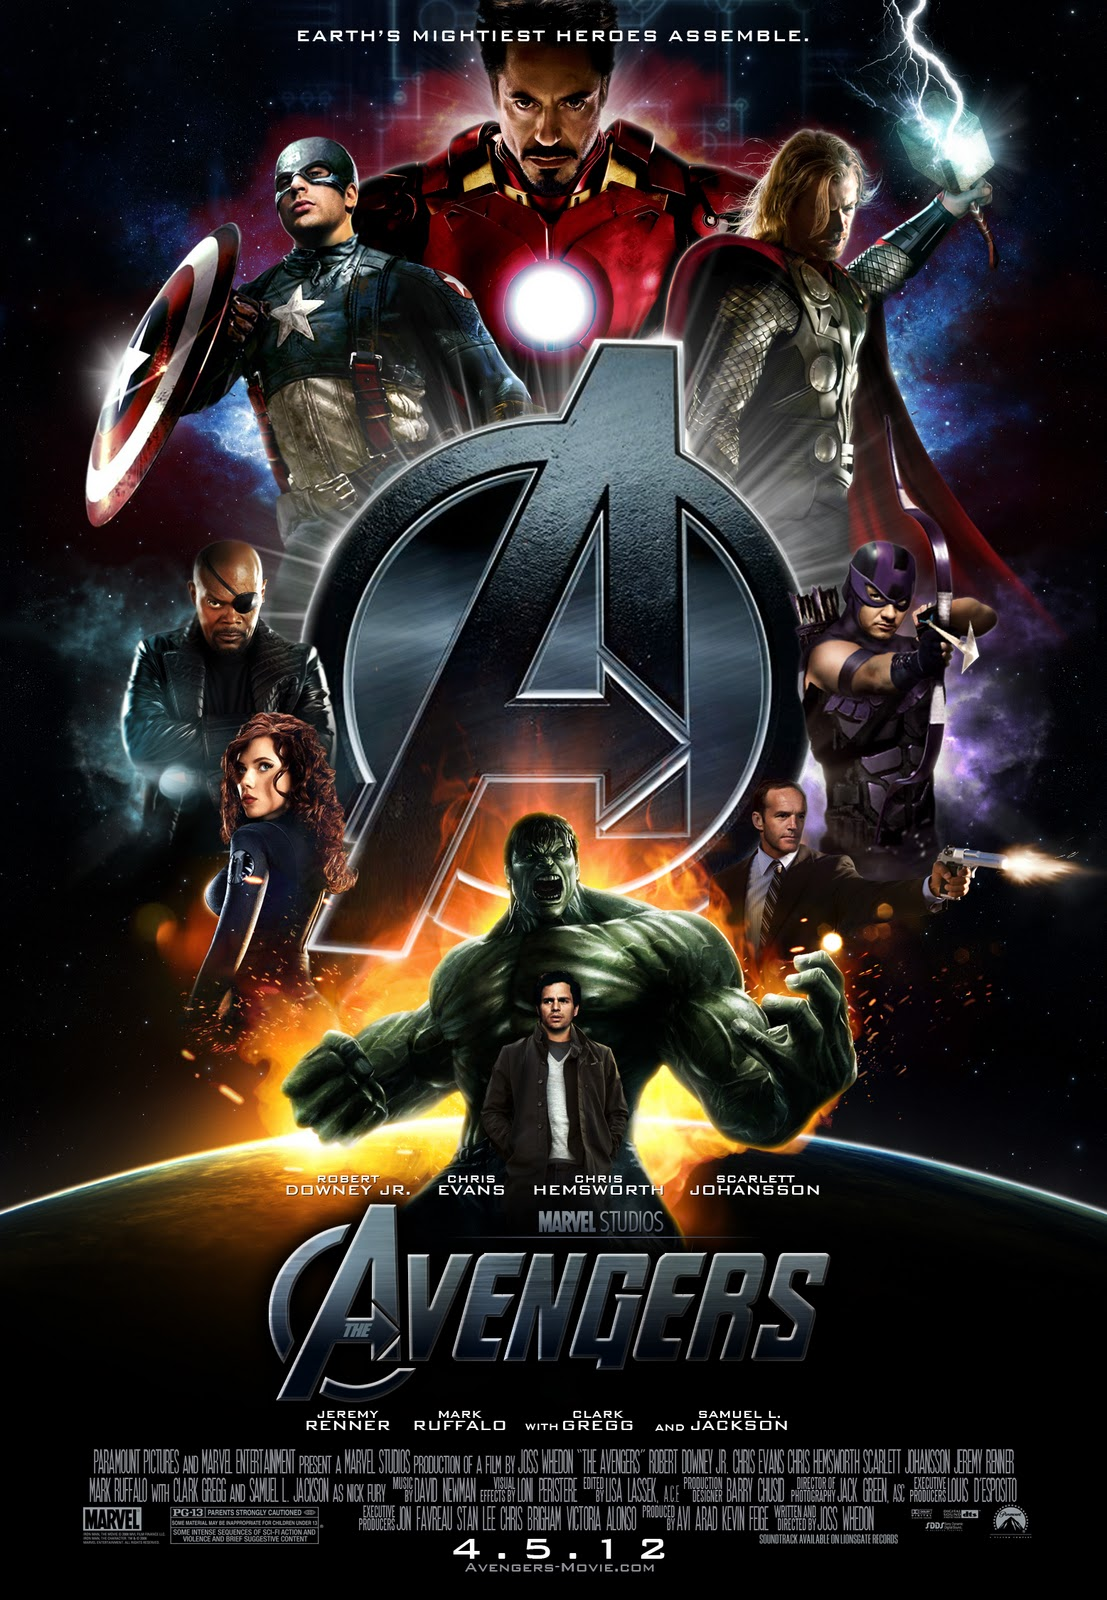 http://3.bp.blogspot.com/-uHY6WnlnmD8/TpTWZUmmWVI/AAAAAAAAC2U/ZVsu0A8ii8M/s1600/__The_Avengers___Movie_Poster_by_themadbutcher.jpg